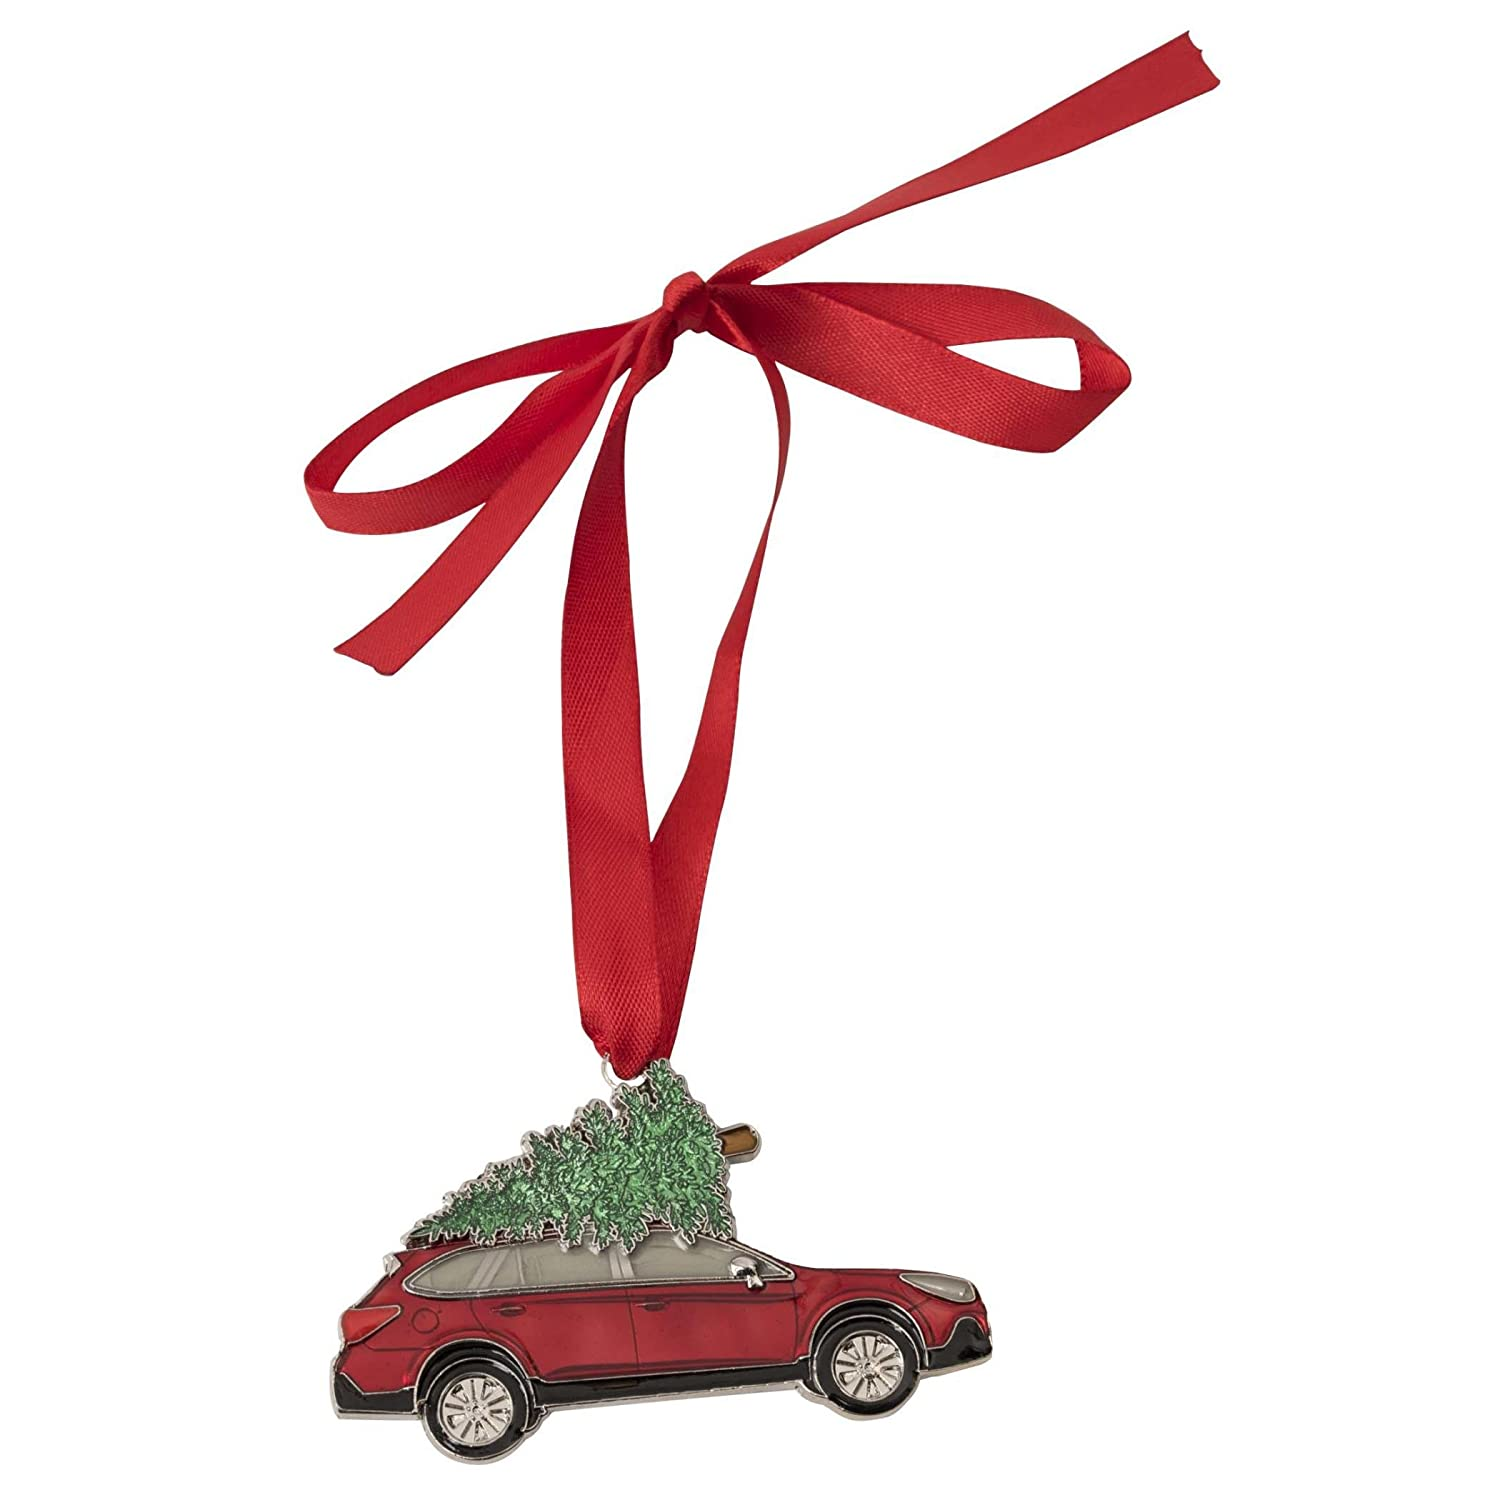 Official Christmas Subaru Outback Tree Ornament Outback Legacy Xmas Red Gift Box